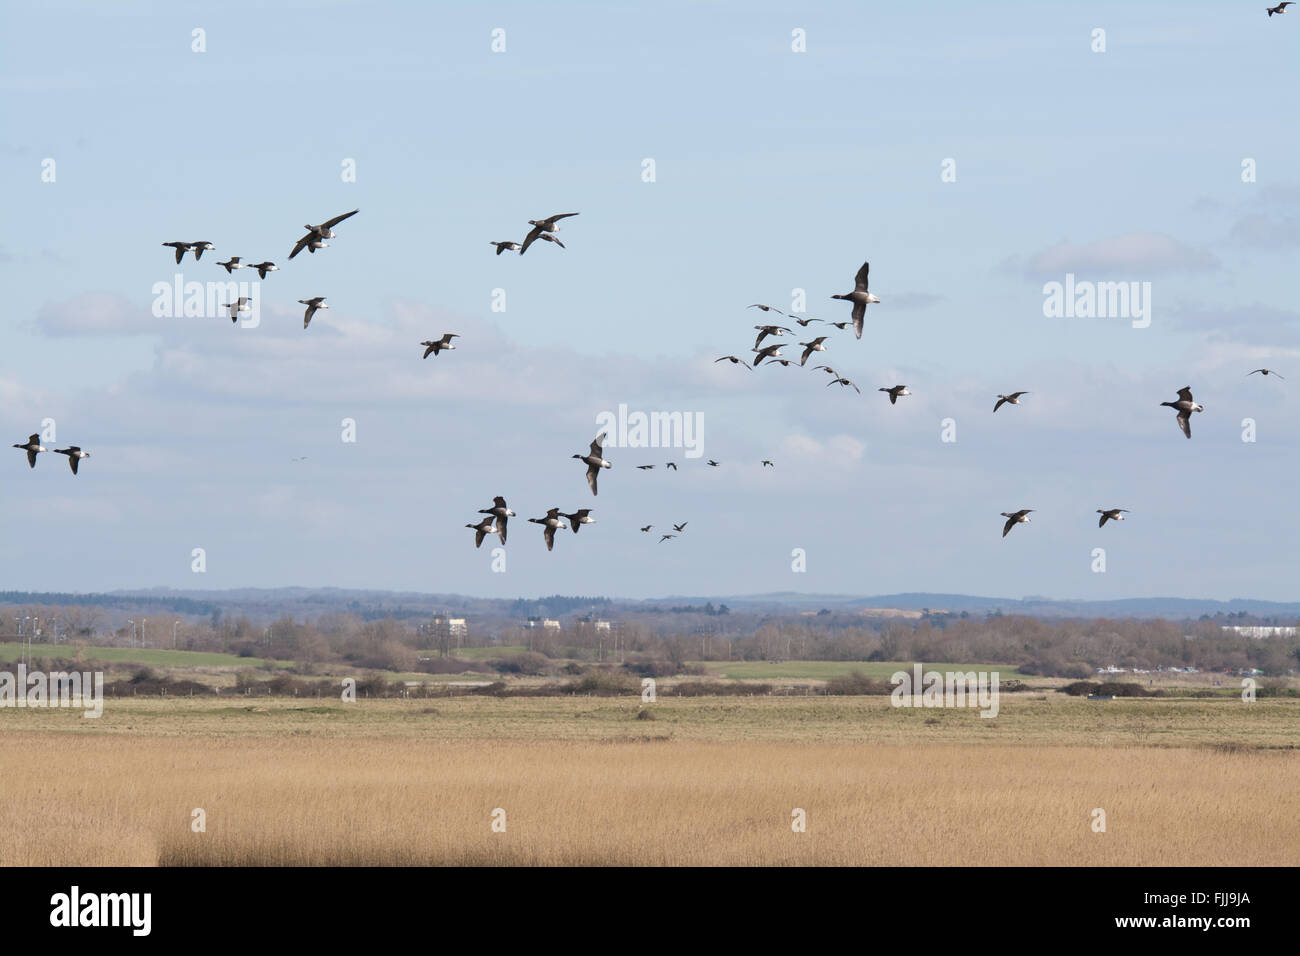 Flock of brent geese (Branta bernicla) in flight over Farlington Marshes in Hampshire, England. - Stock Image